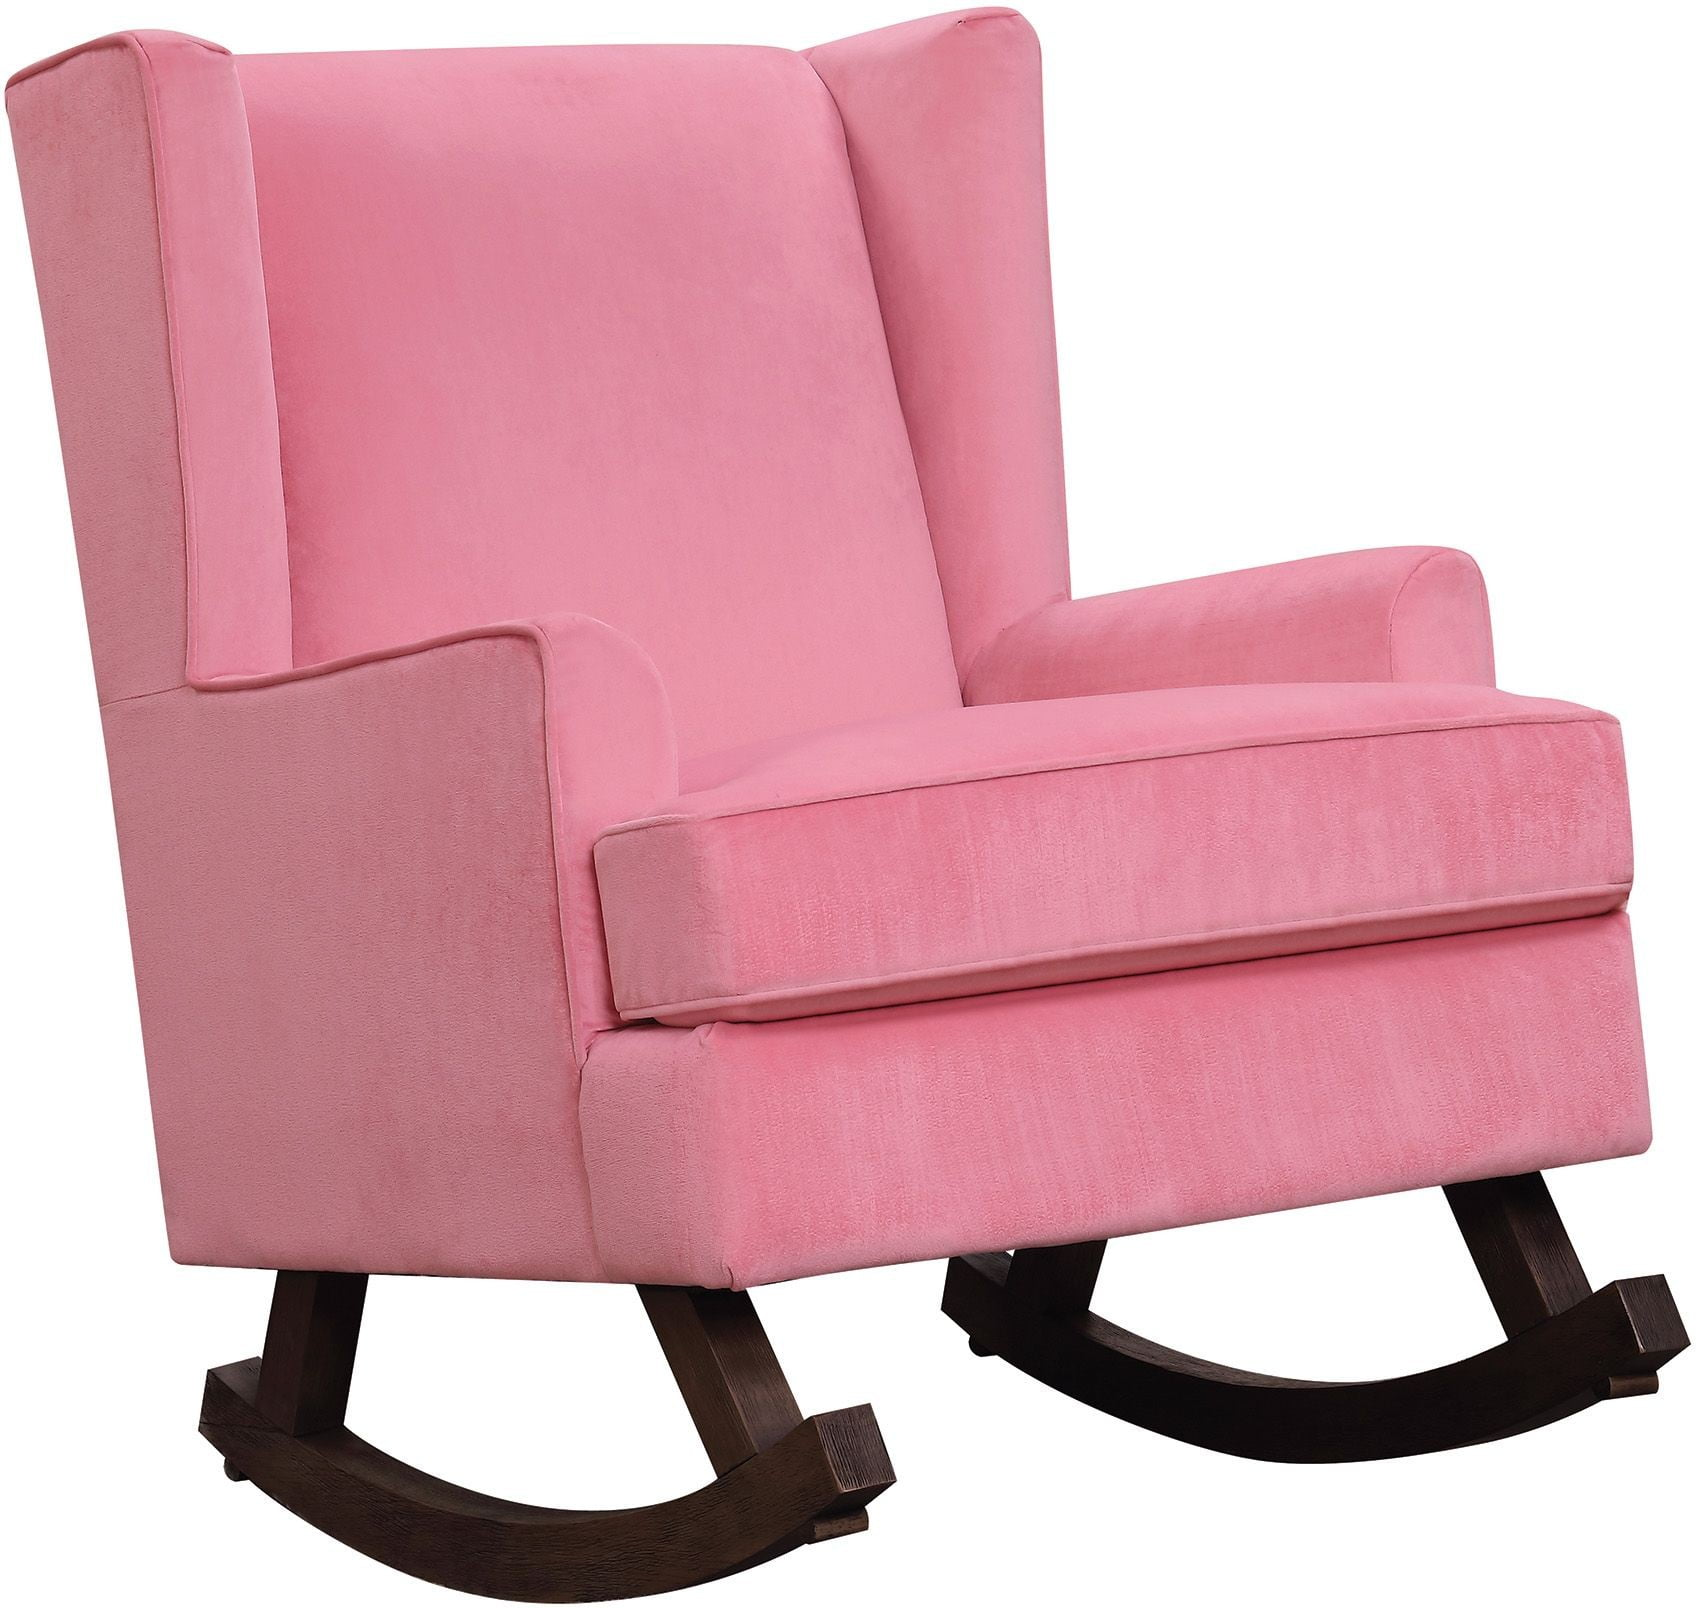 Lily Pink Glider Chair from Elements Furniture  Coleman